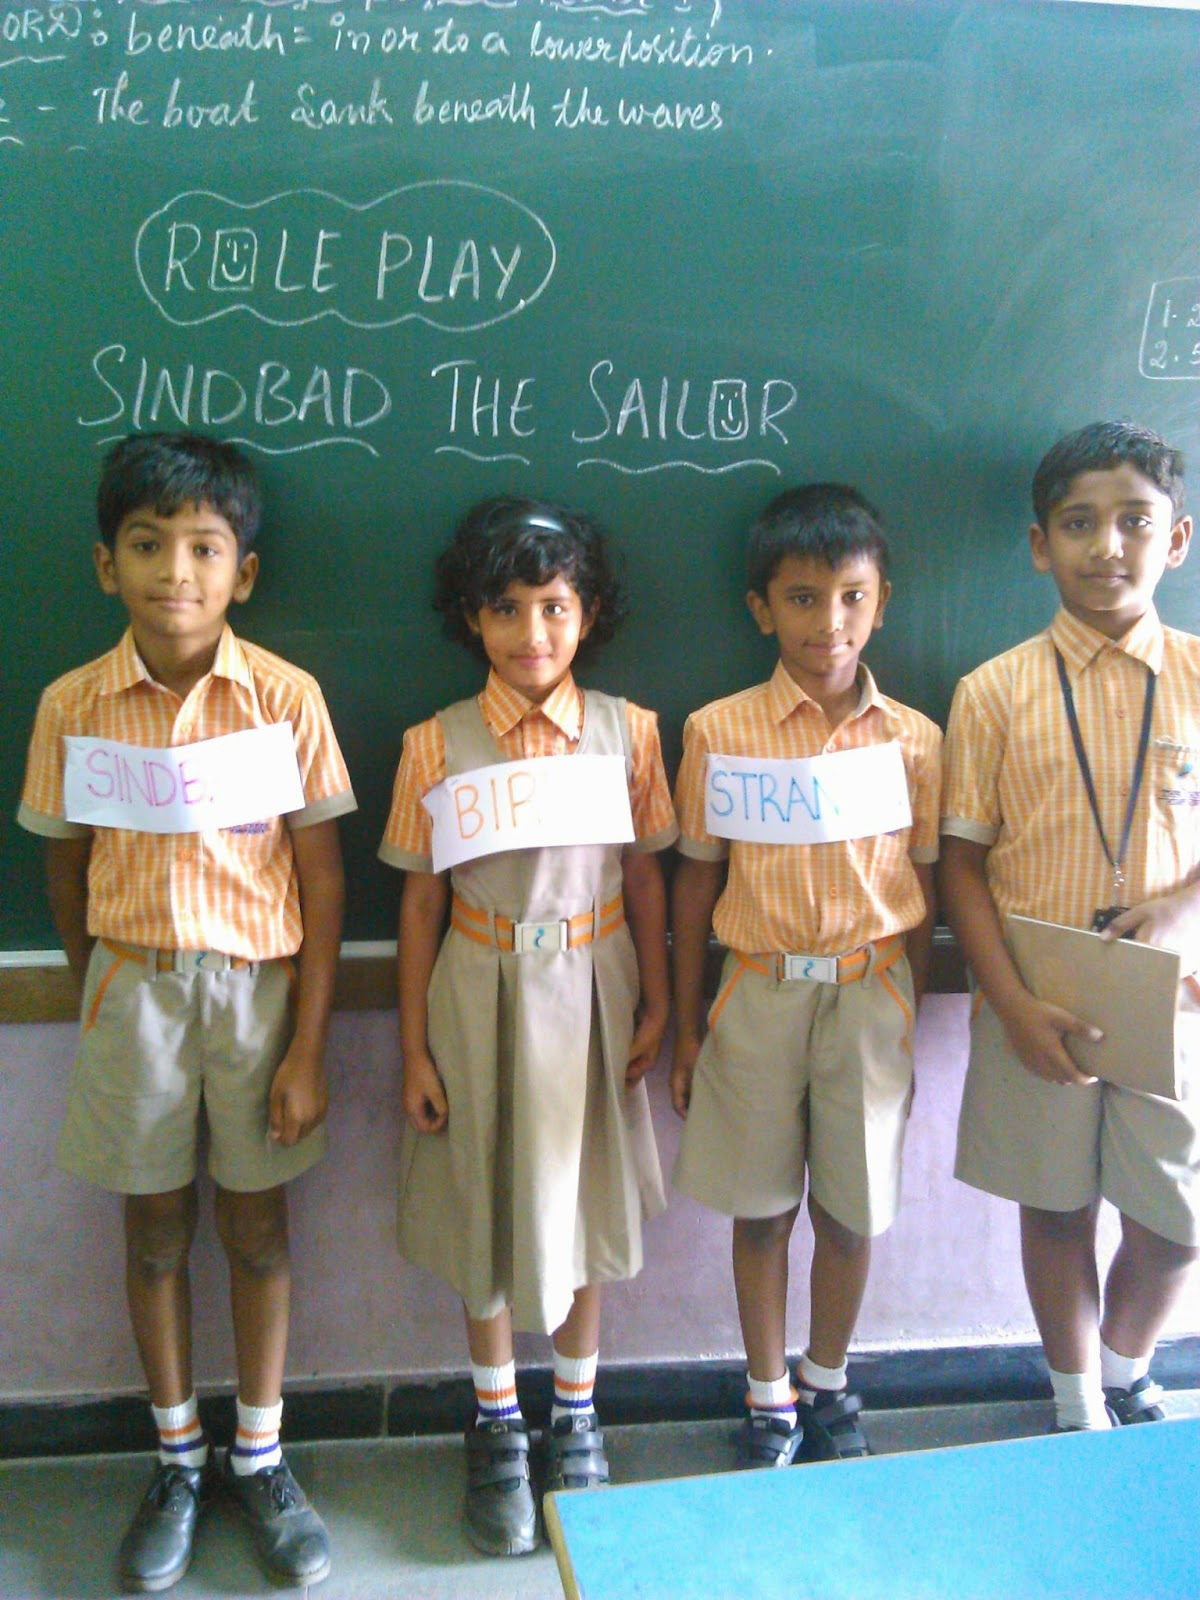 the creek planet school english activities junior wing 2014 15 know how to deal difficult situations by thinking wisely children learned to use one s wit if one finds oneself in a difficult situation